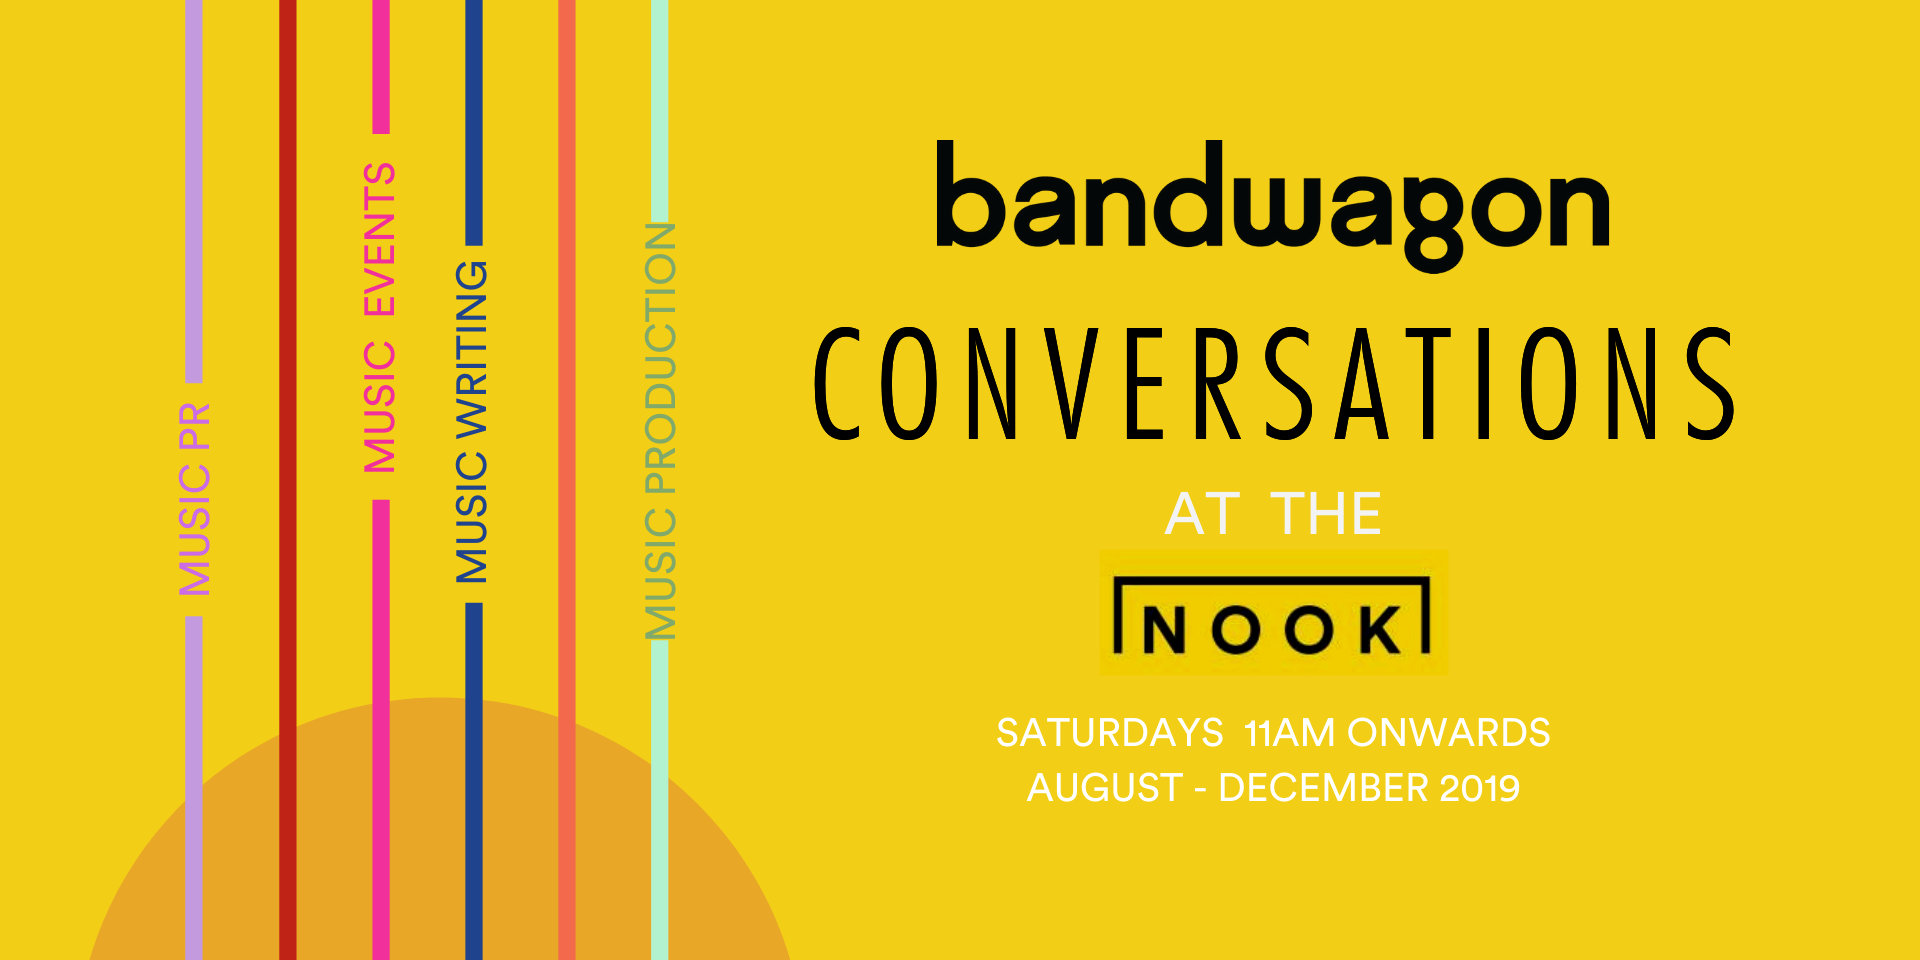 Let your stories be told at Bandwagon Conversations at the Nook